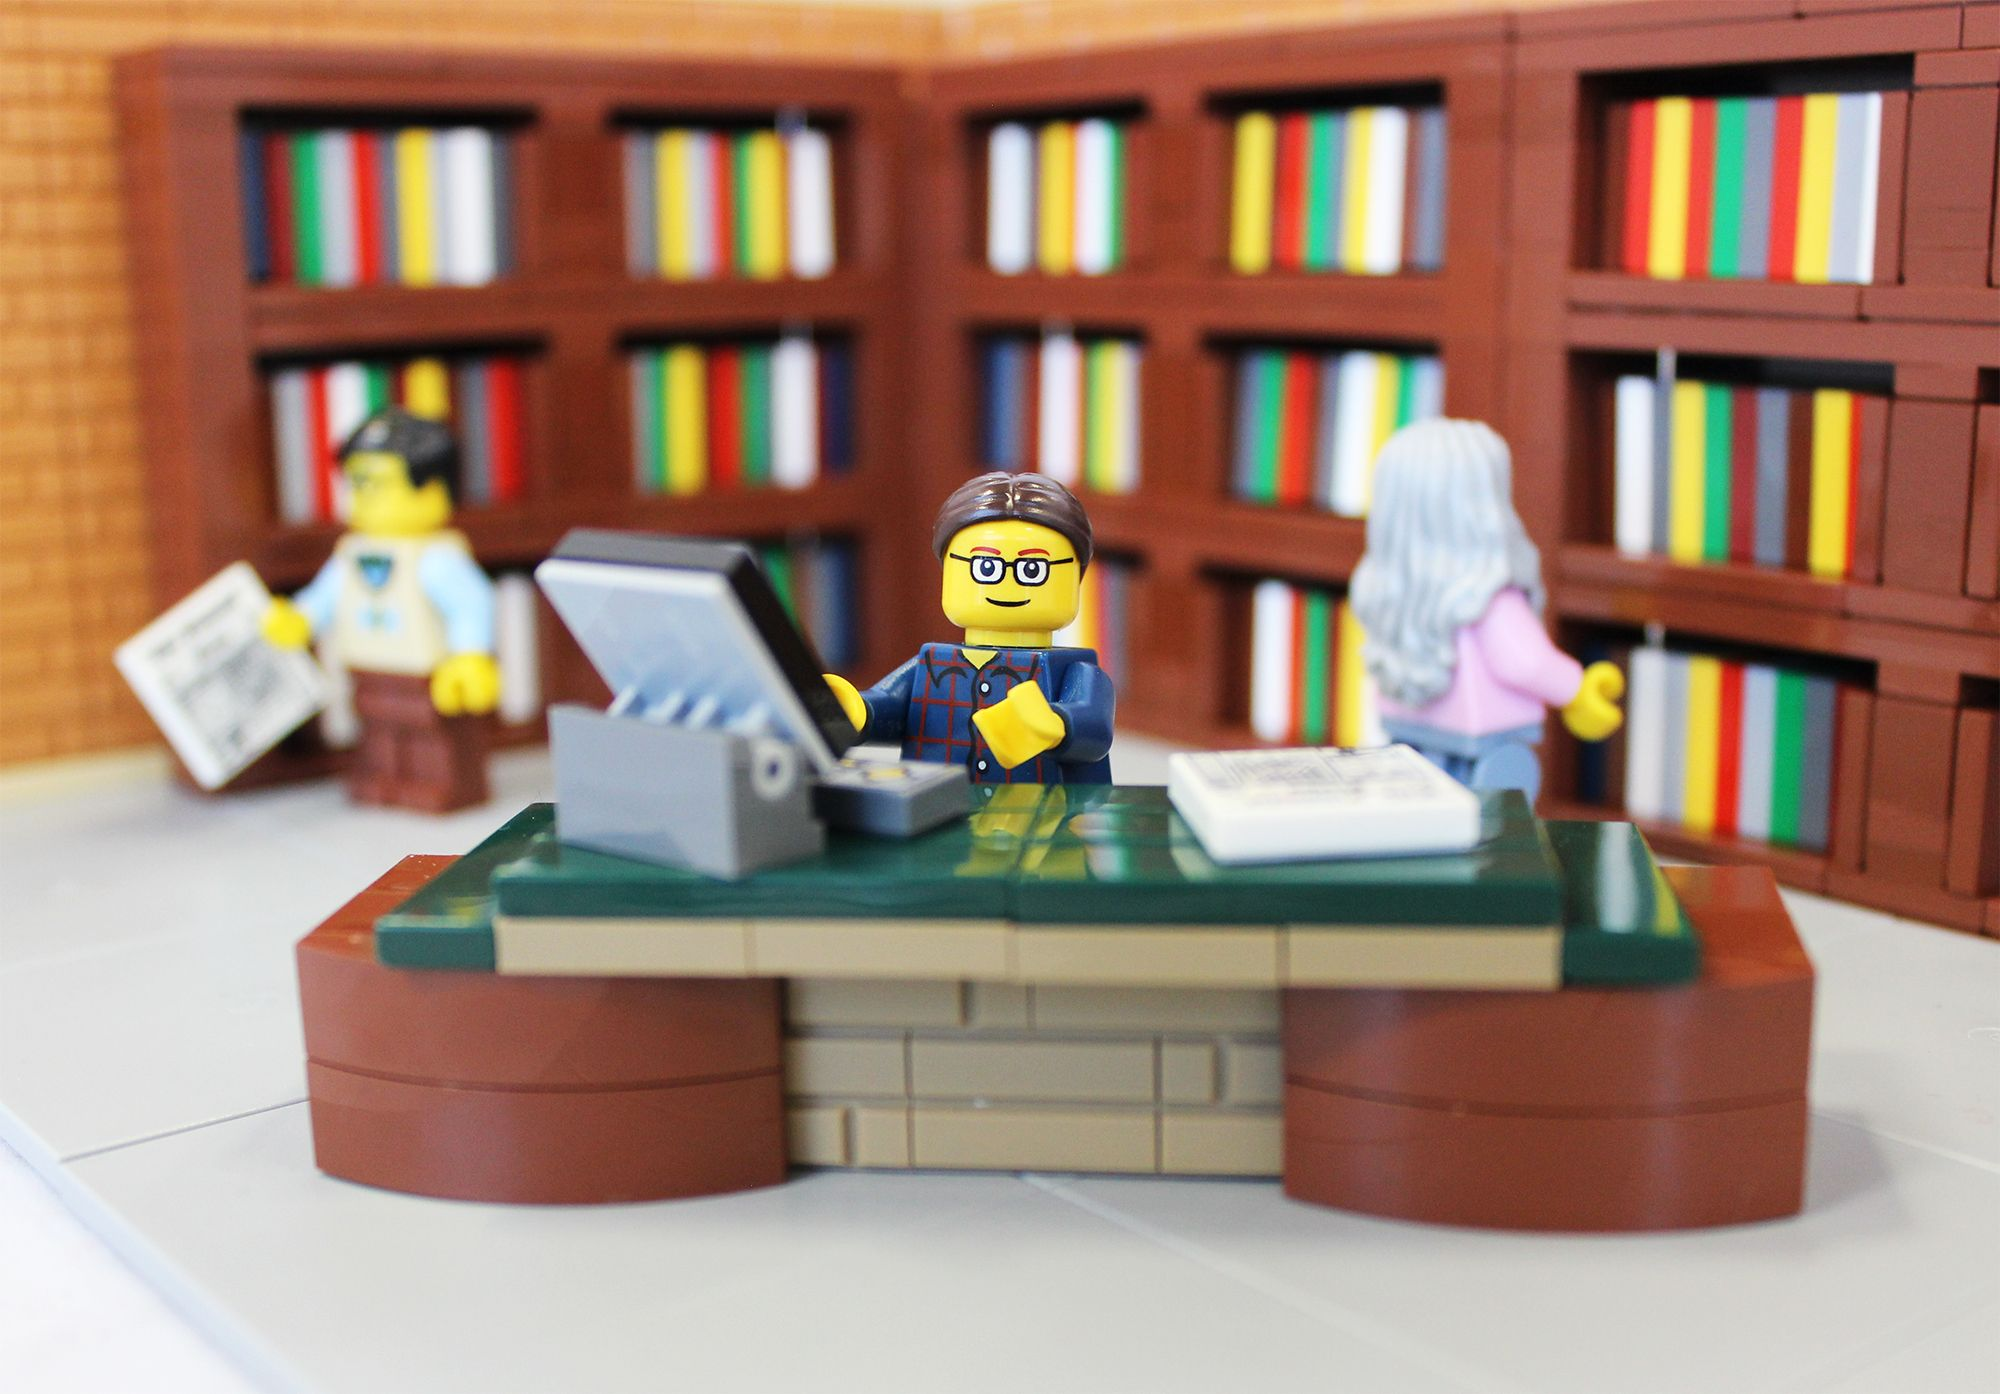 Librarian Day - National Library Week - Library Workers Day | LEGO